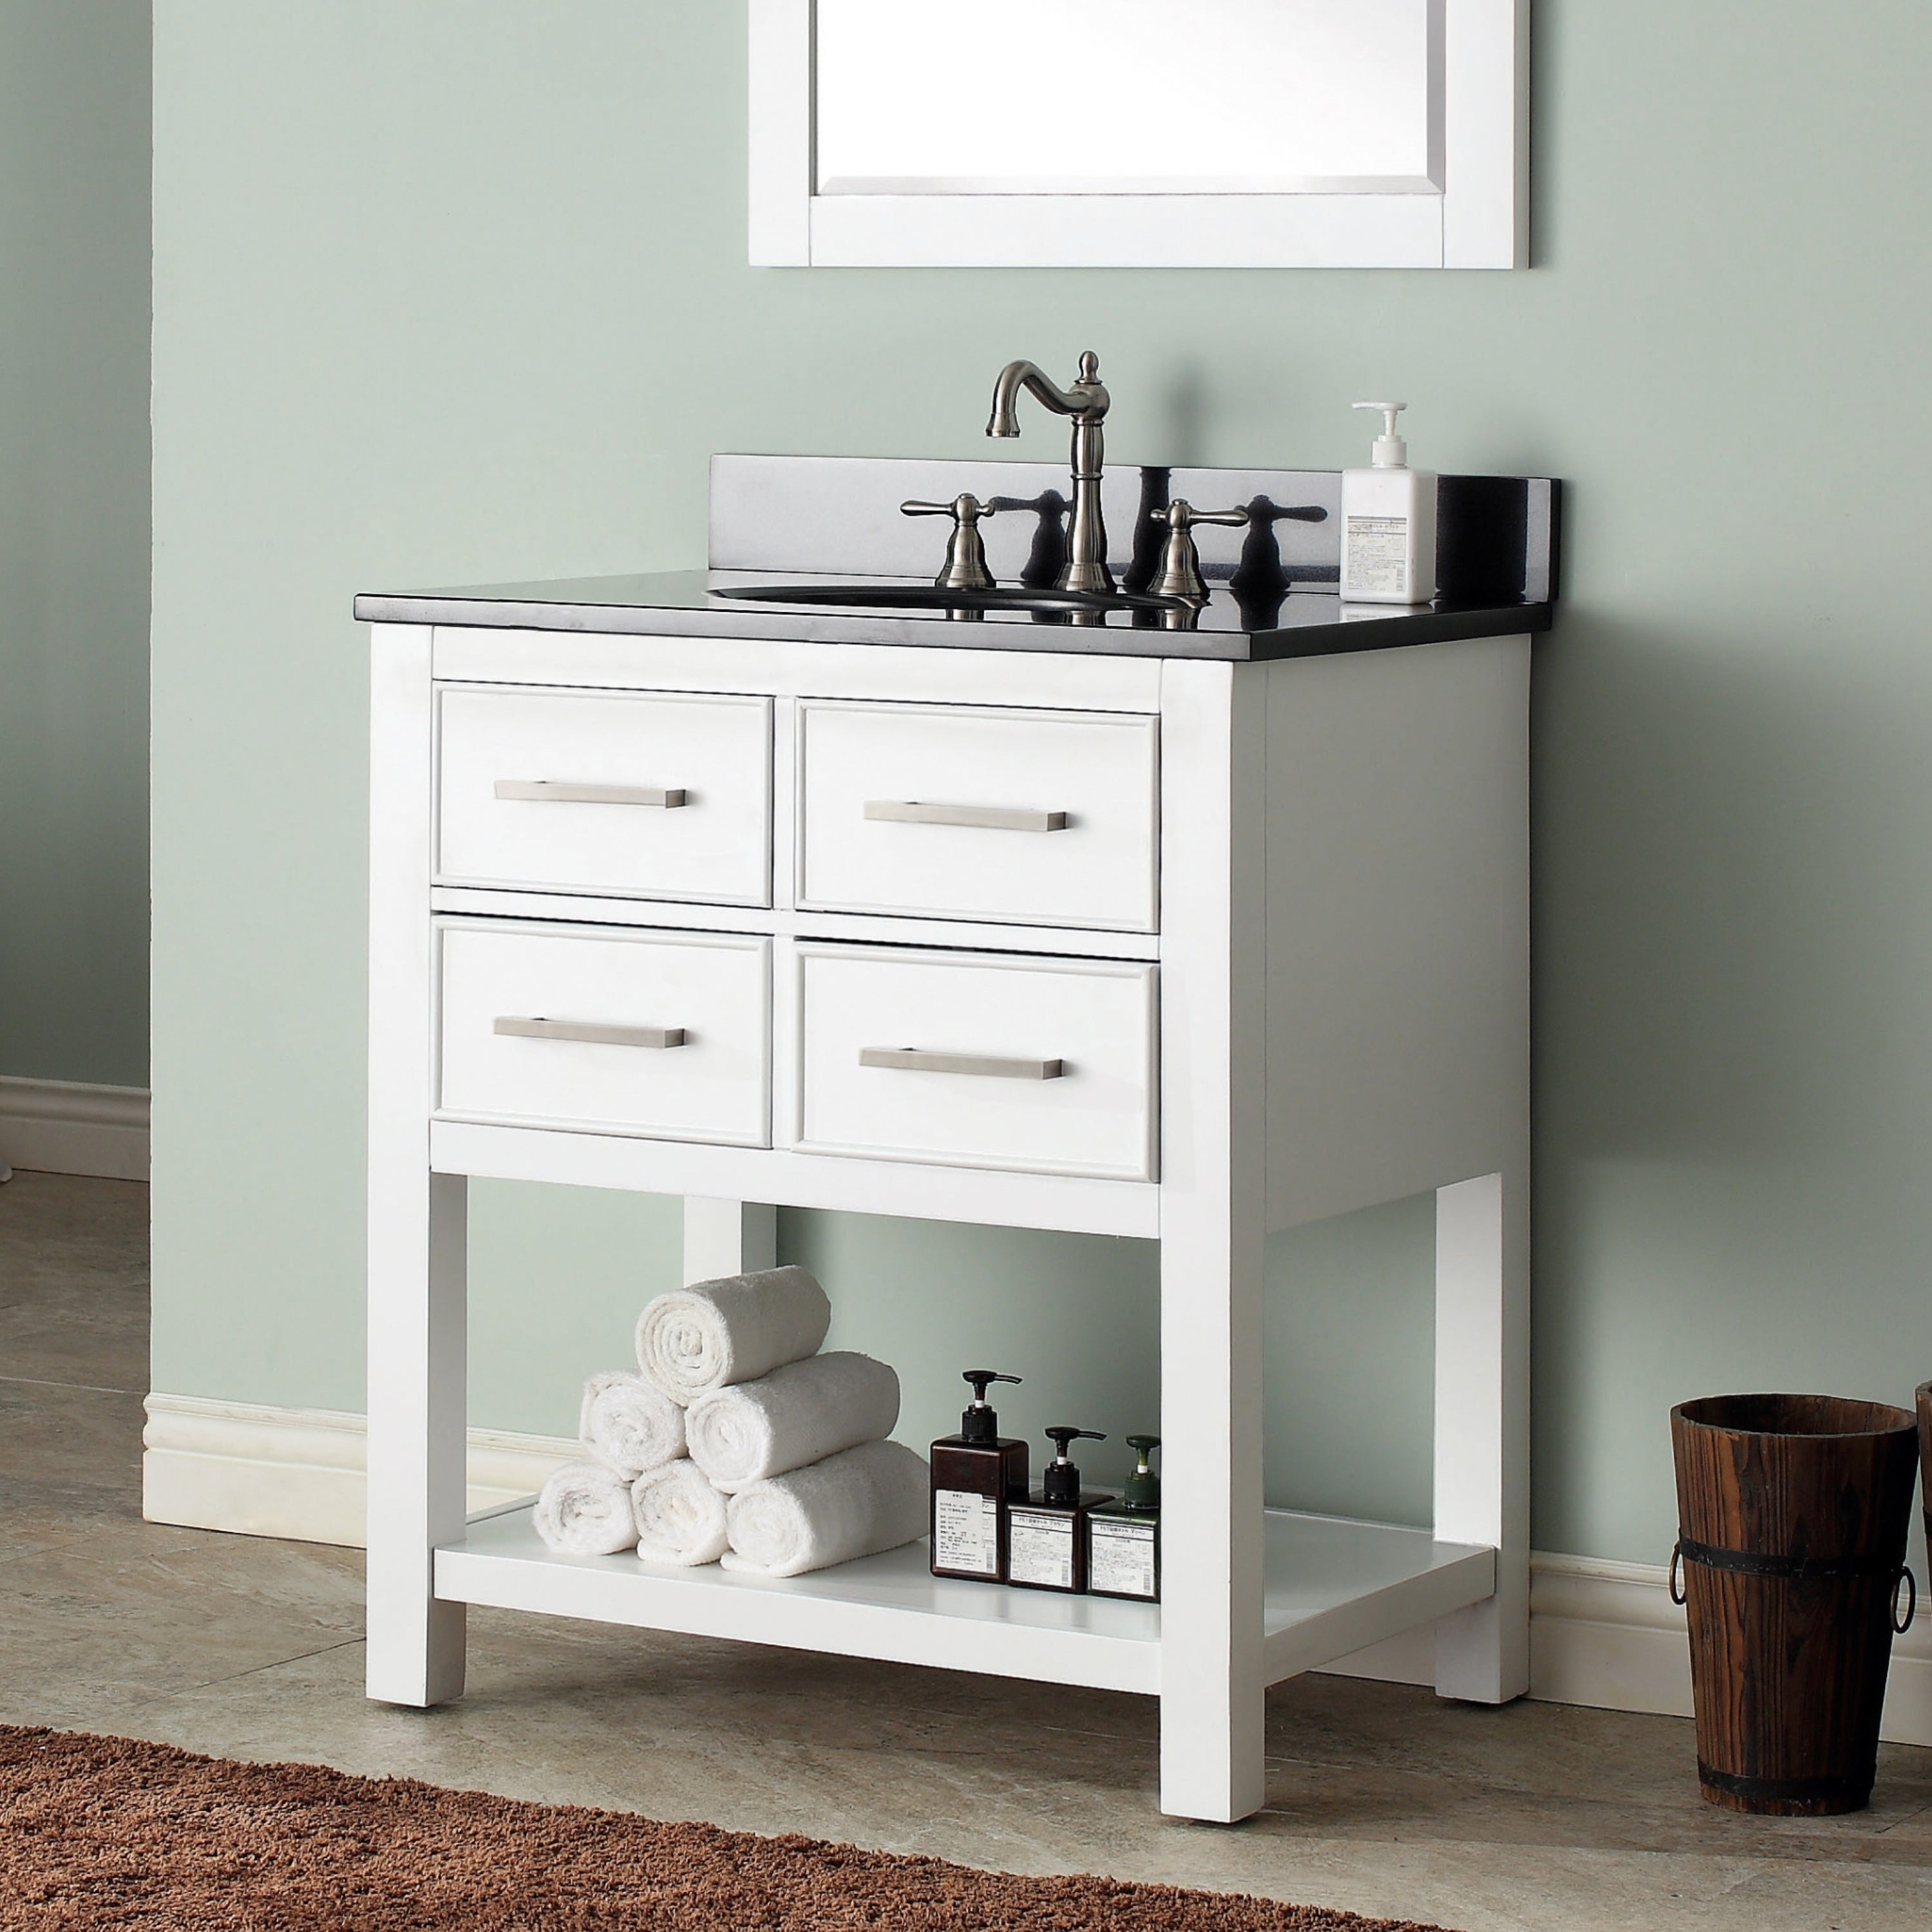 Avanity Brooks 31 Inch White Vanity Combo With Top And Sink Overstock 9378946